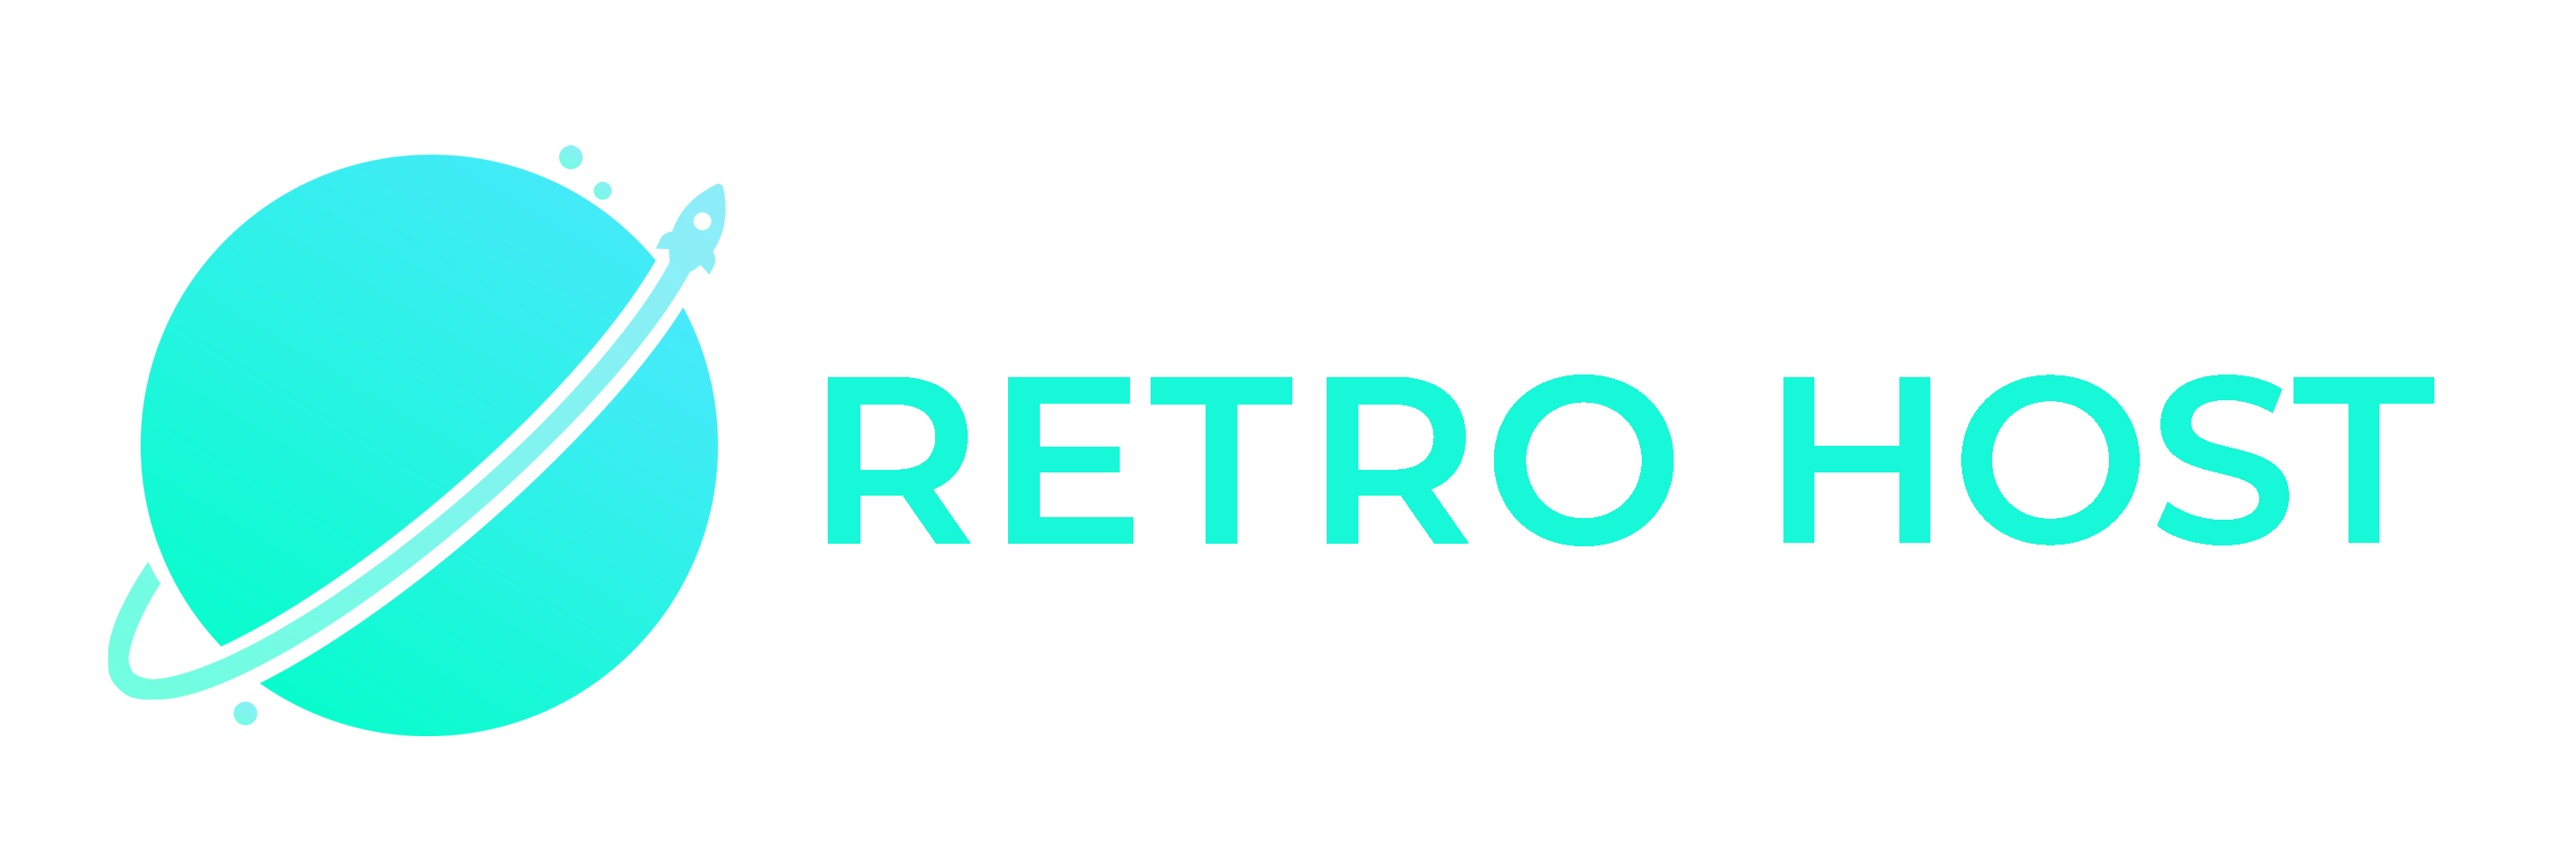 Retro Host LLC